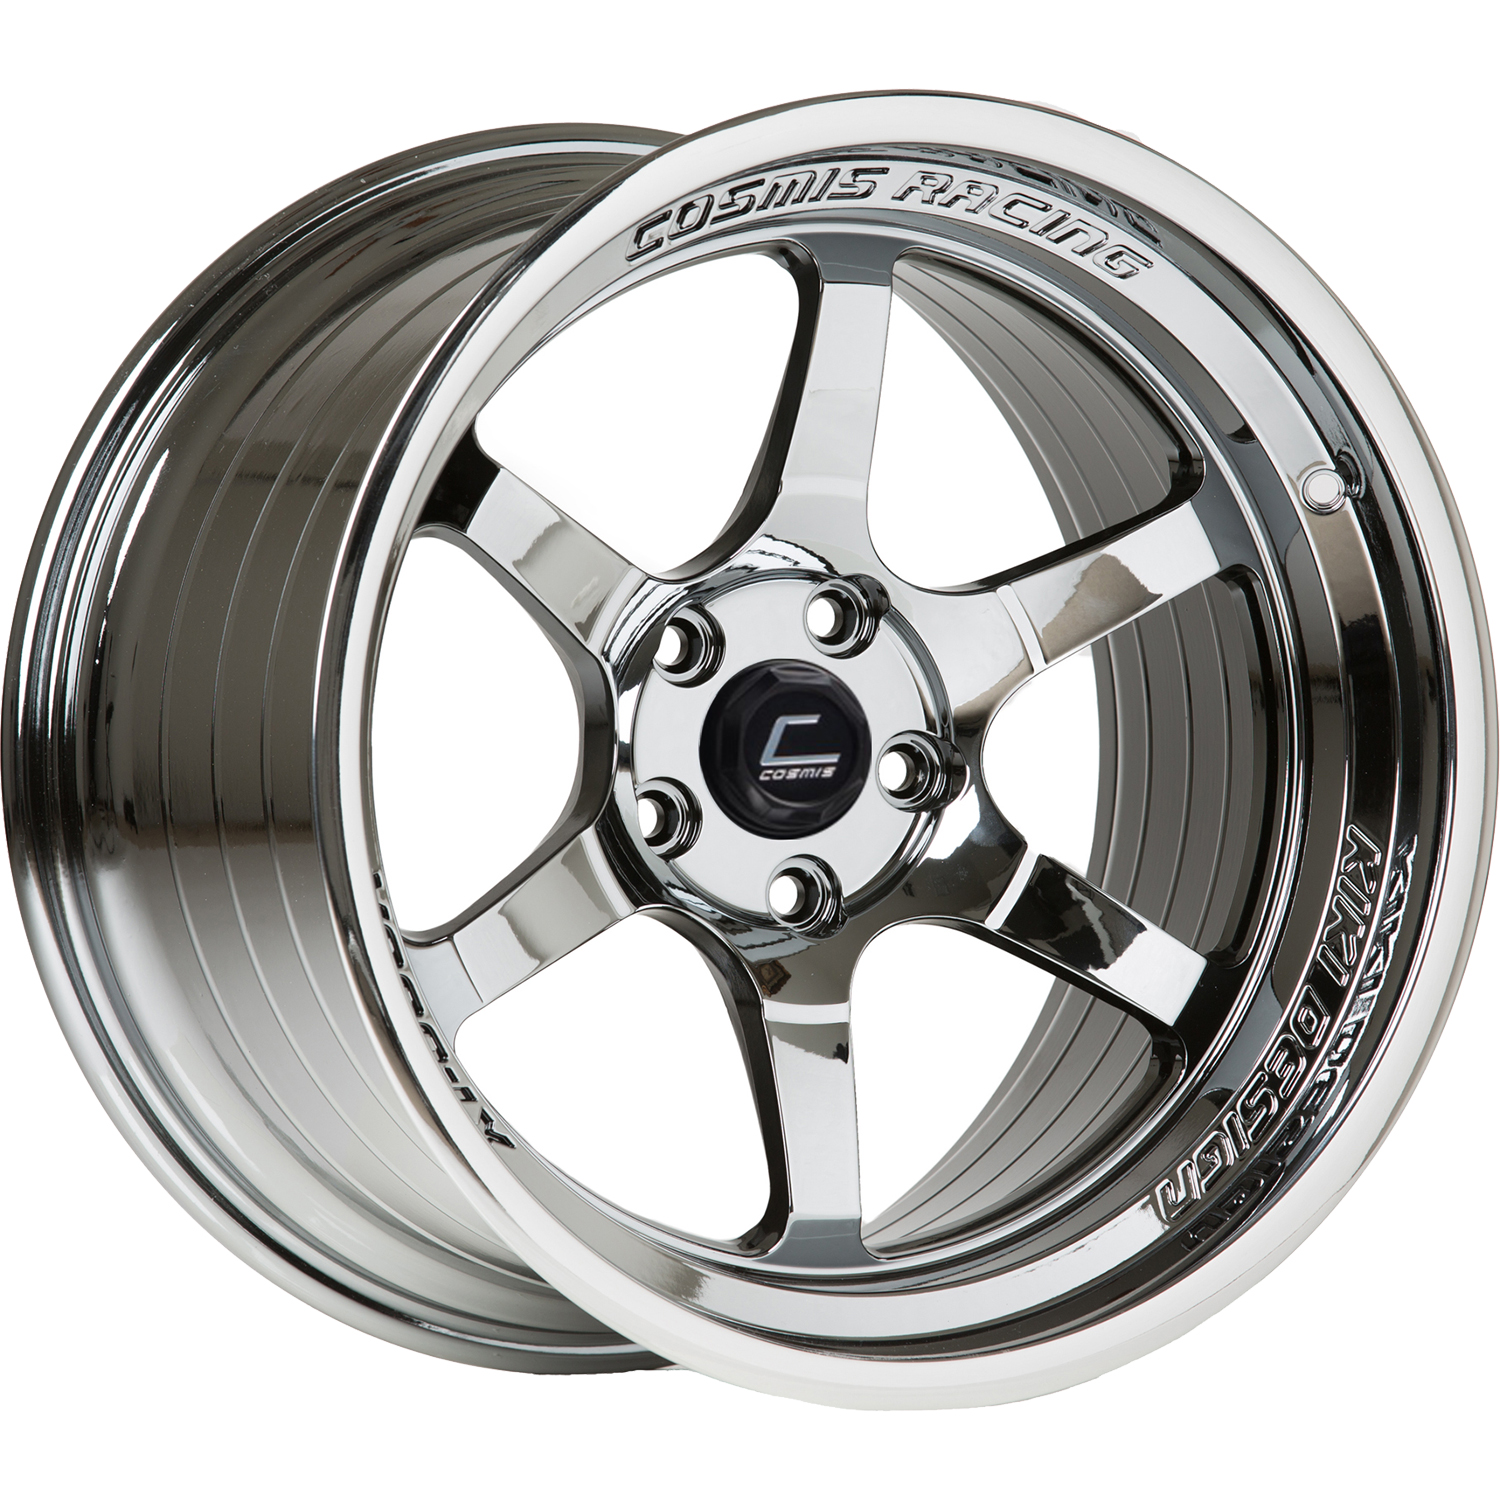 Cosmis Racing XT-006R Black Chrome 18x11 8